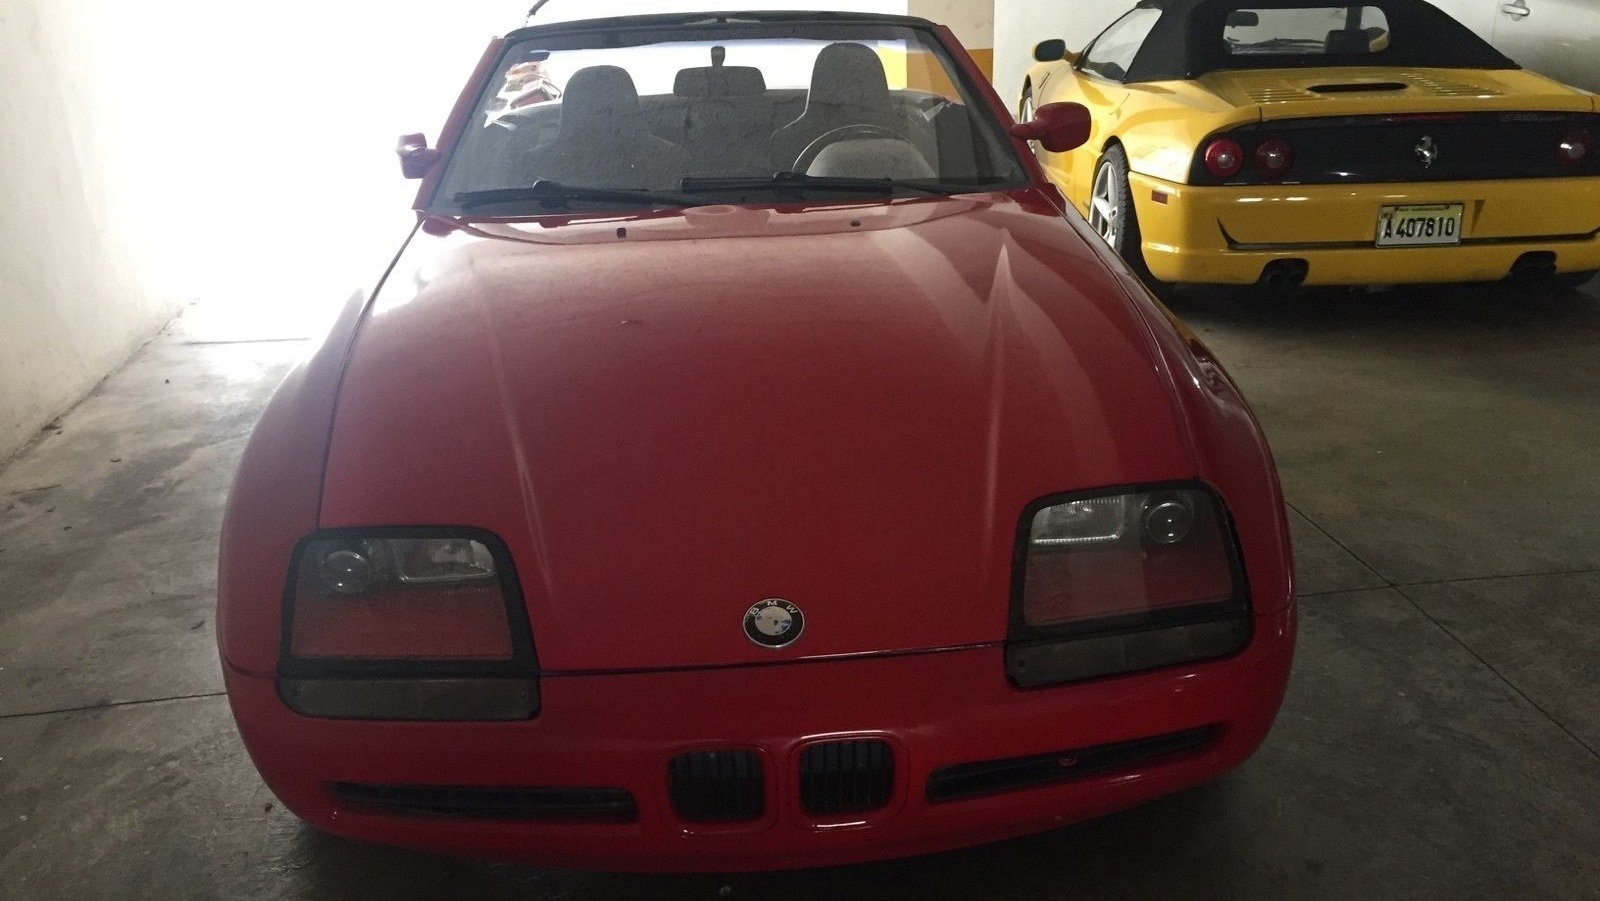 bmw z1 to buy bmw z1 classic car review honest john bmw z1 technical details history photos on. Black Bedroom Furniture Sets. Home Design Ideas